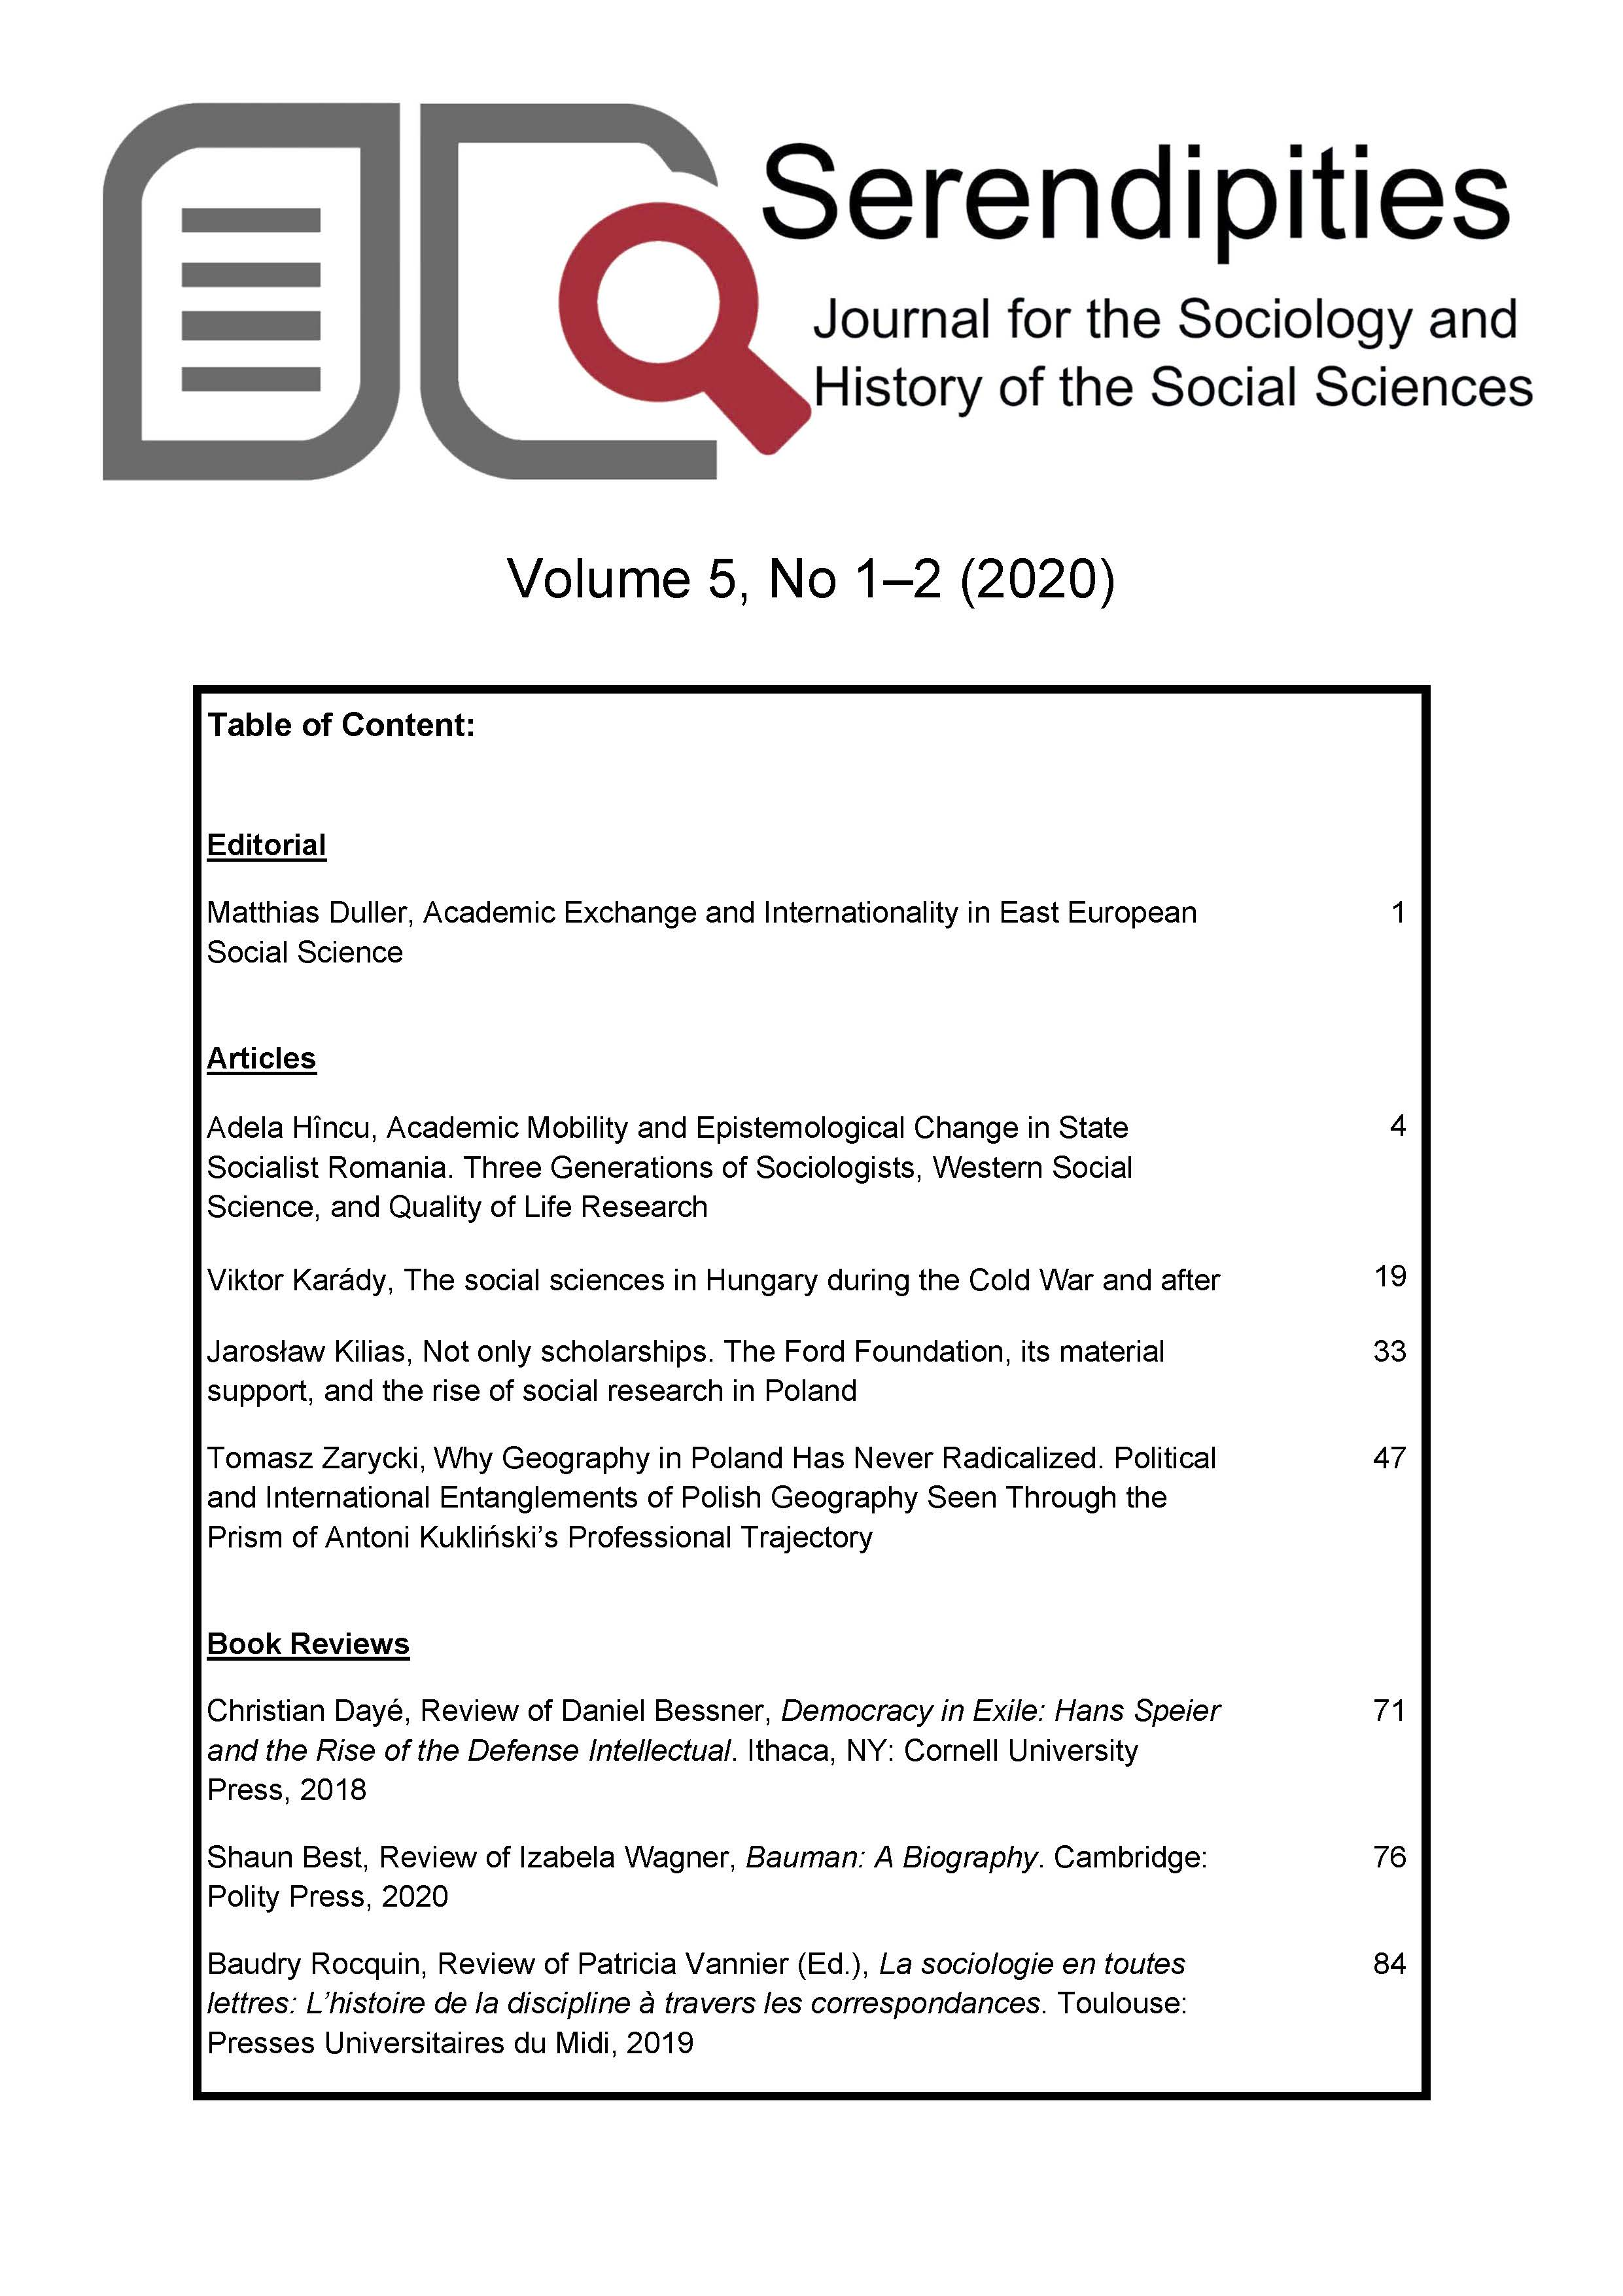 View Vol. 5 No. 1-2 (2020): Serendipities. Journal for the Sociology and History of the Social Sciences